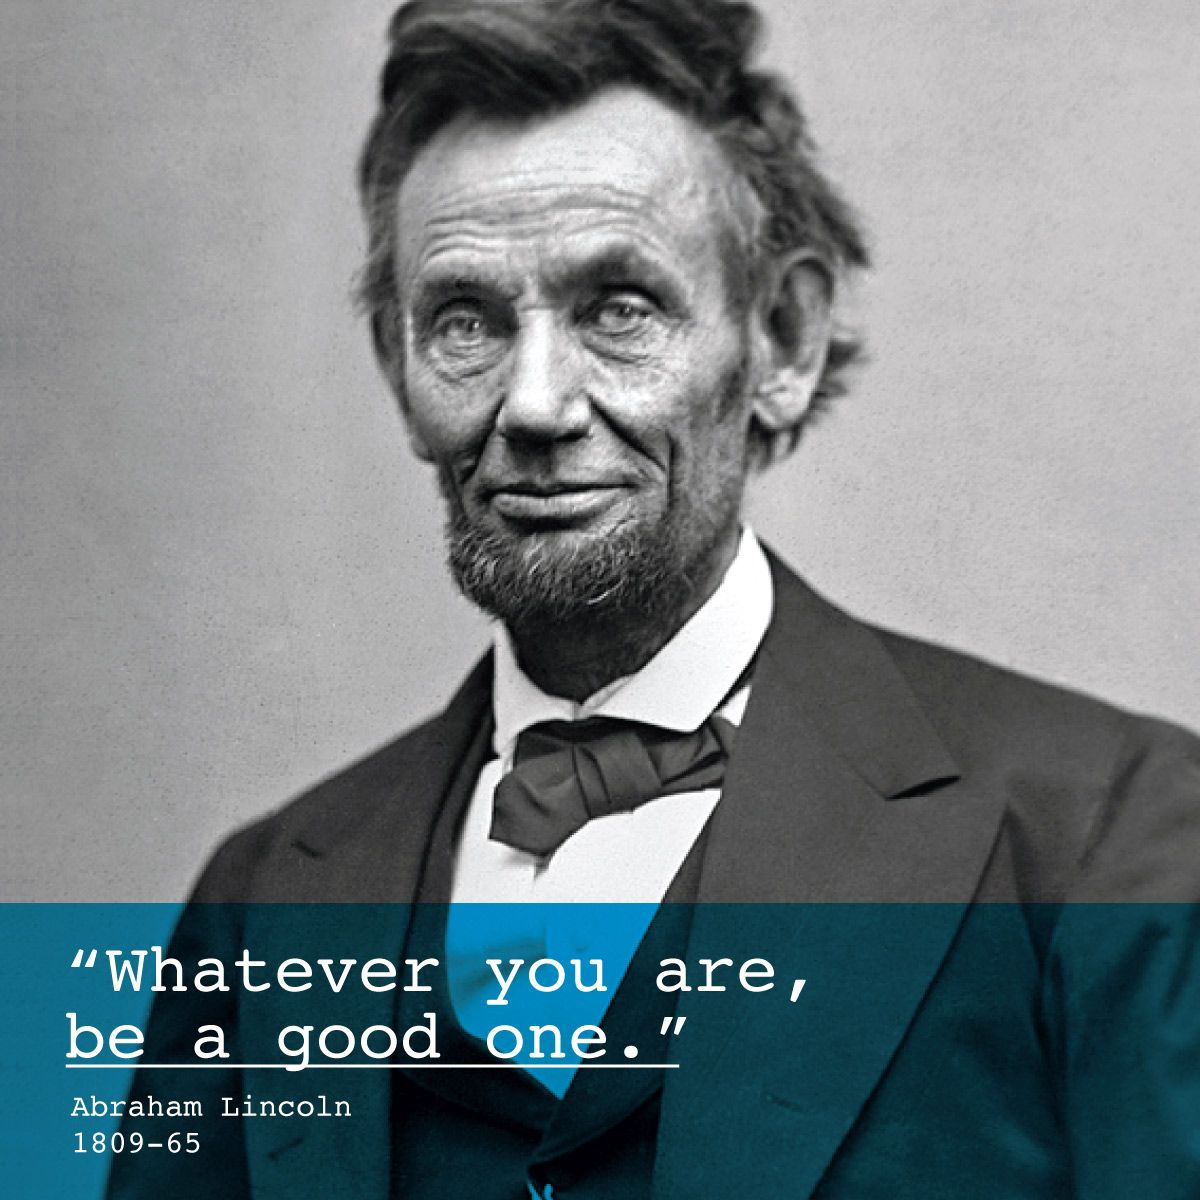 Abraham Lincoln S Birthday Is February 12 We Admire His Example